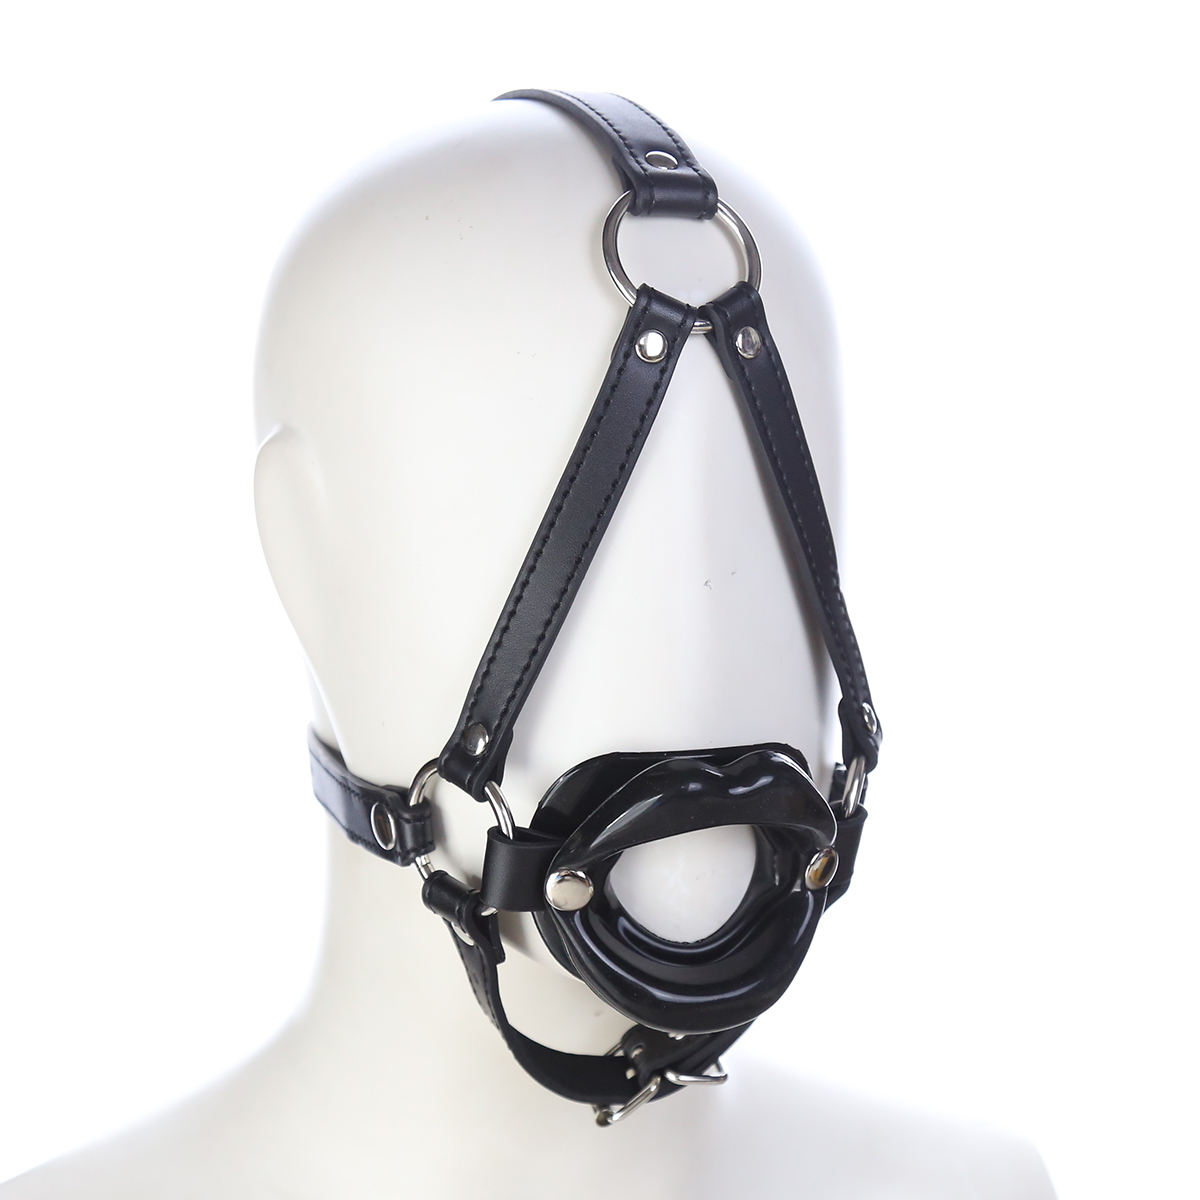 Aimitoy SM Game Bondage Sex Toy Bdsm Mouth Opener Head Mouth Ball Gag Retractor Head Harness